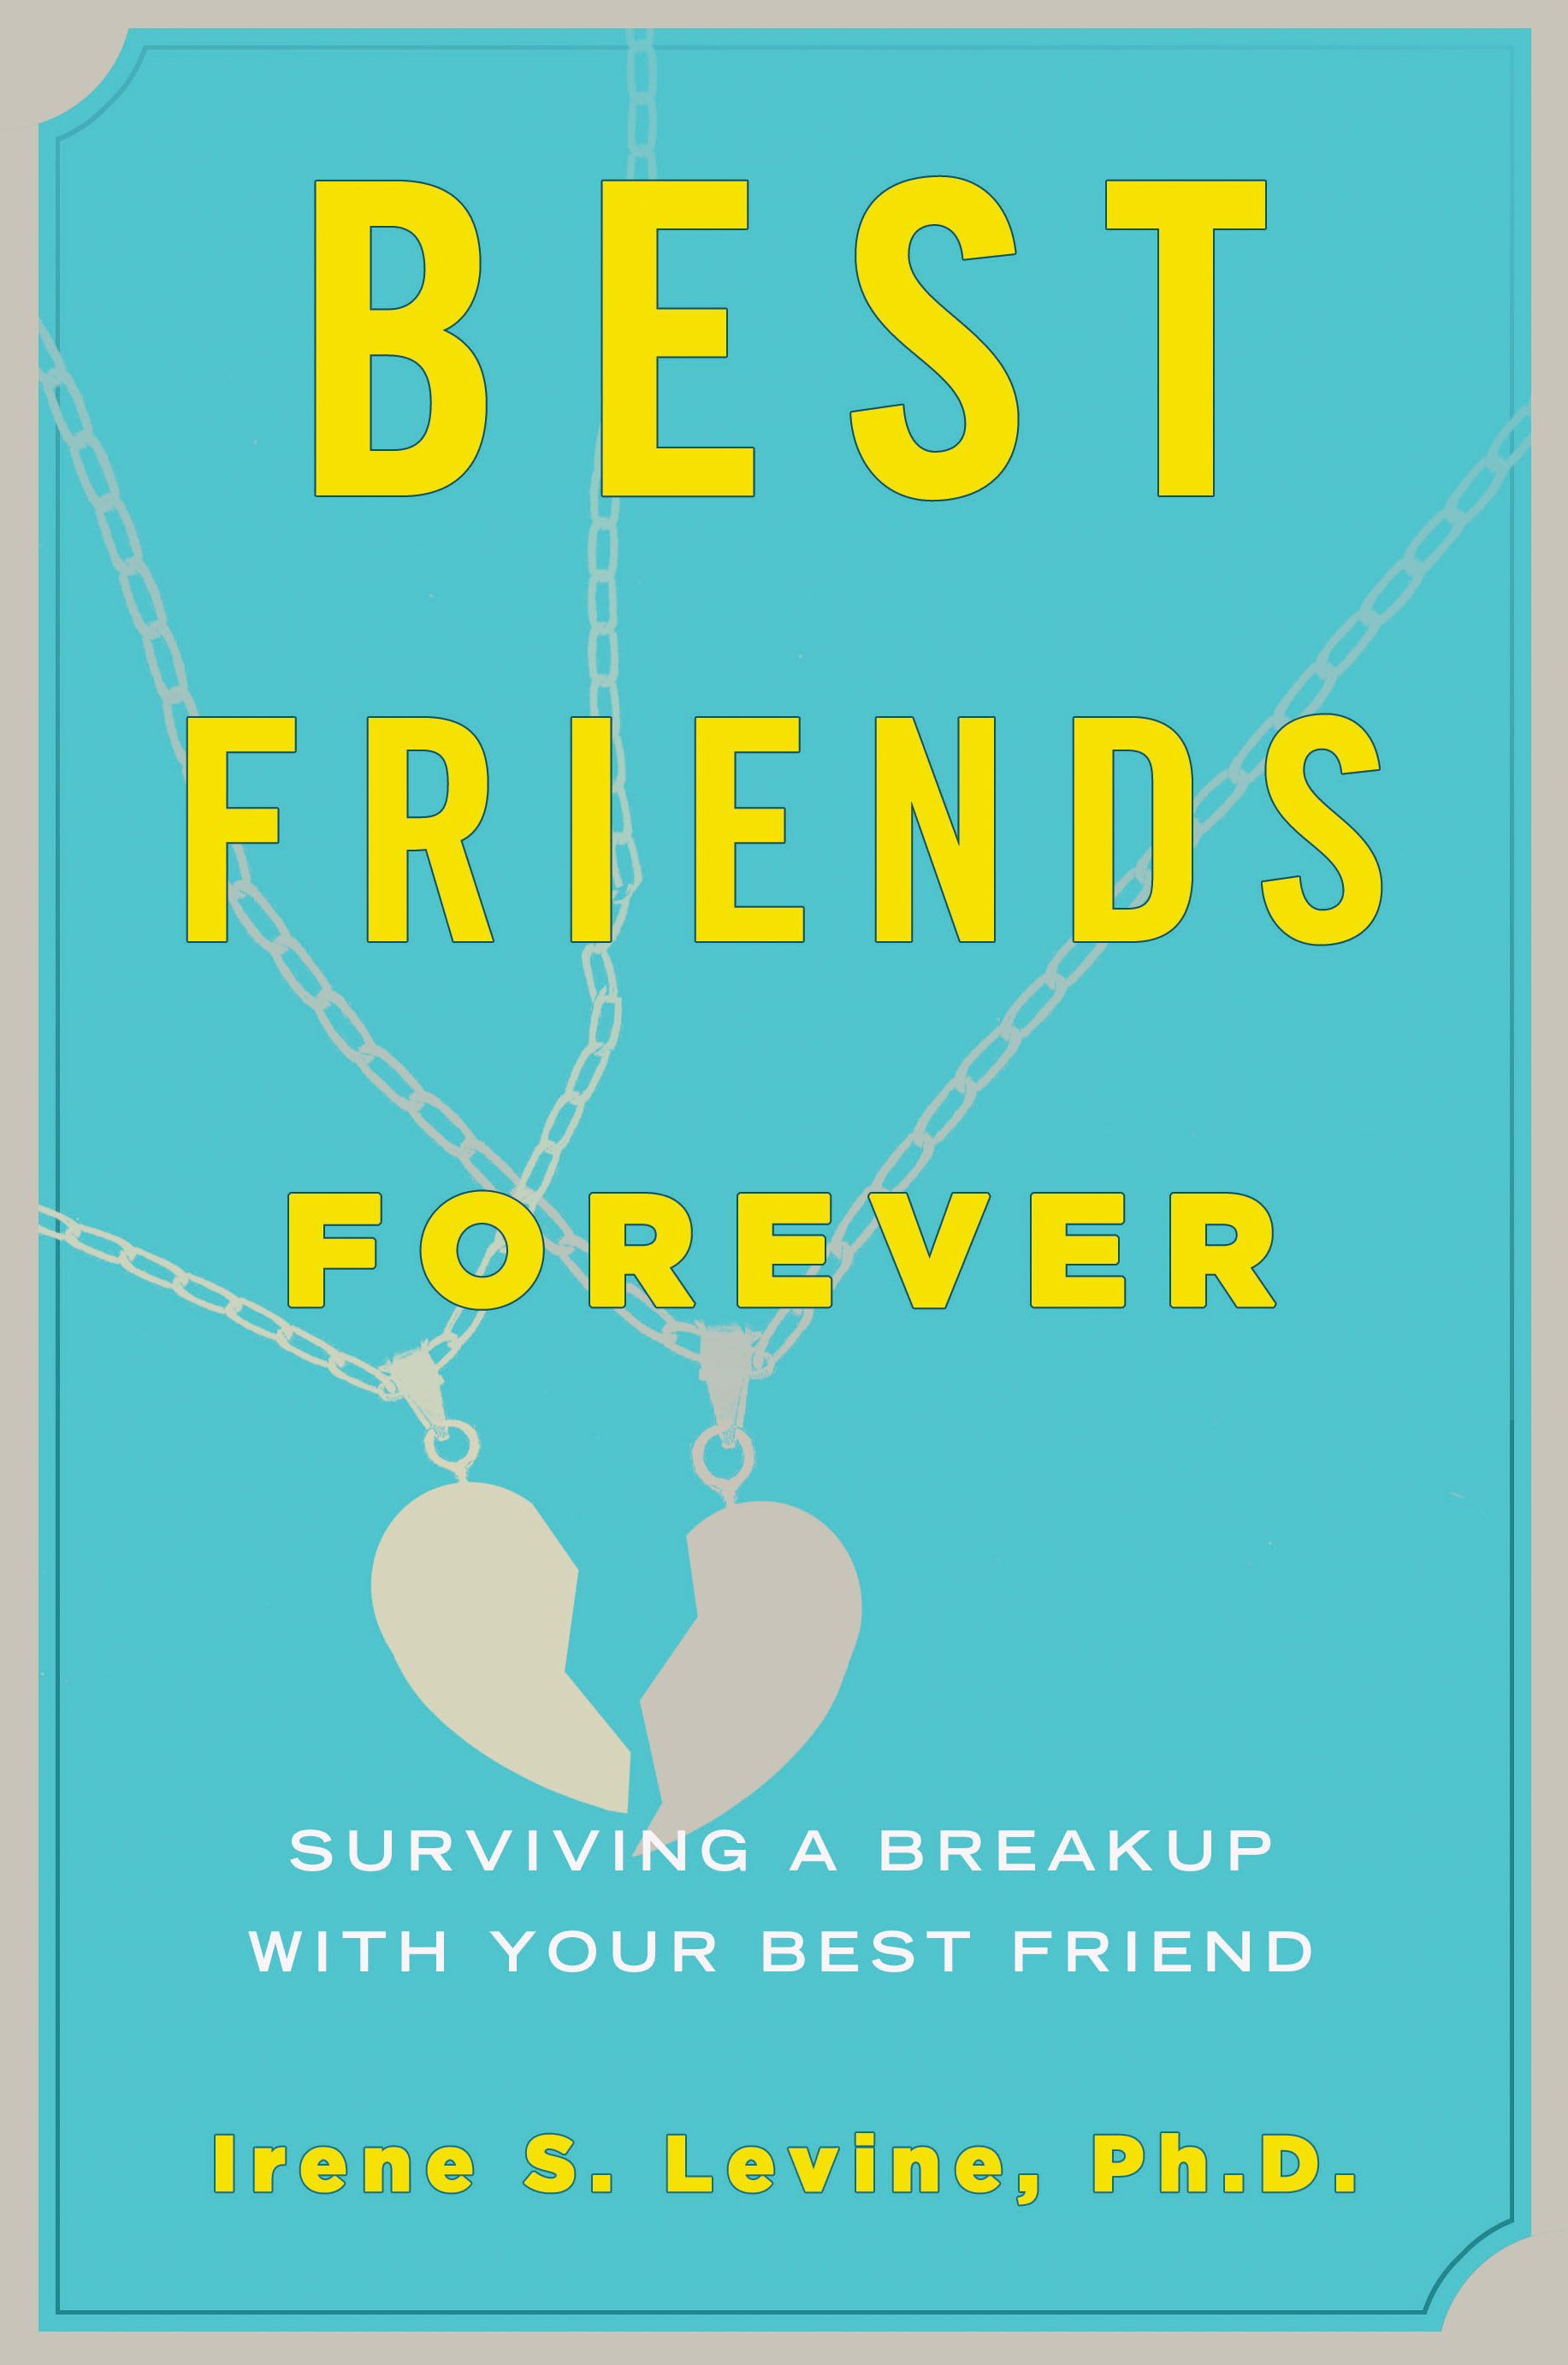 from best friends forever by irene s levine marmaduke writing  from best friends forever by irene s levine marmaduke writing